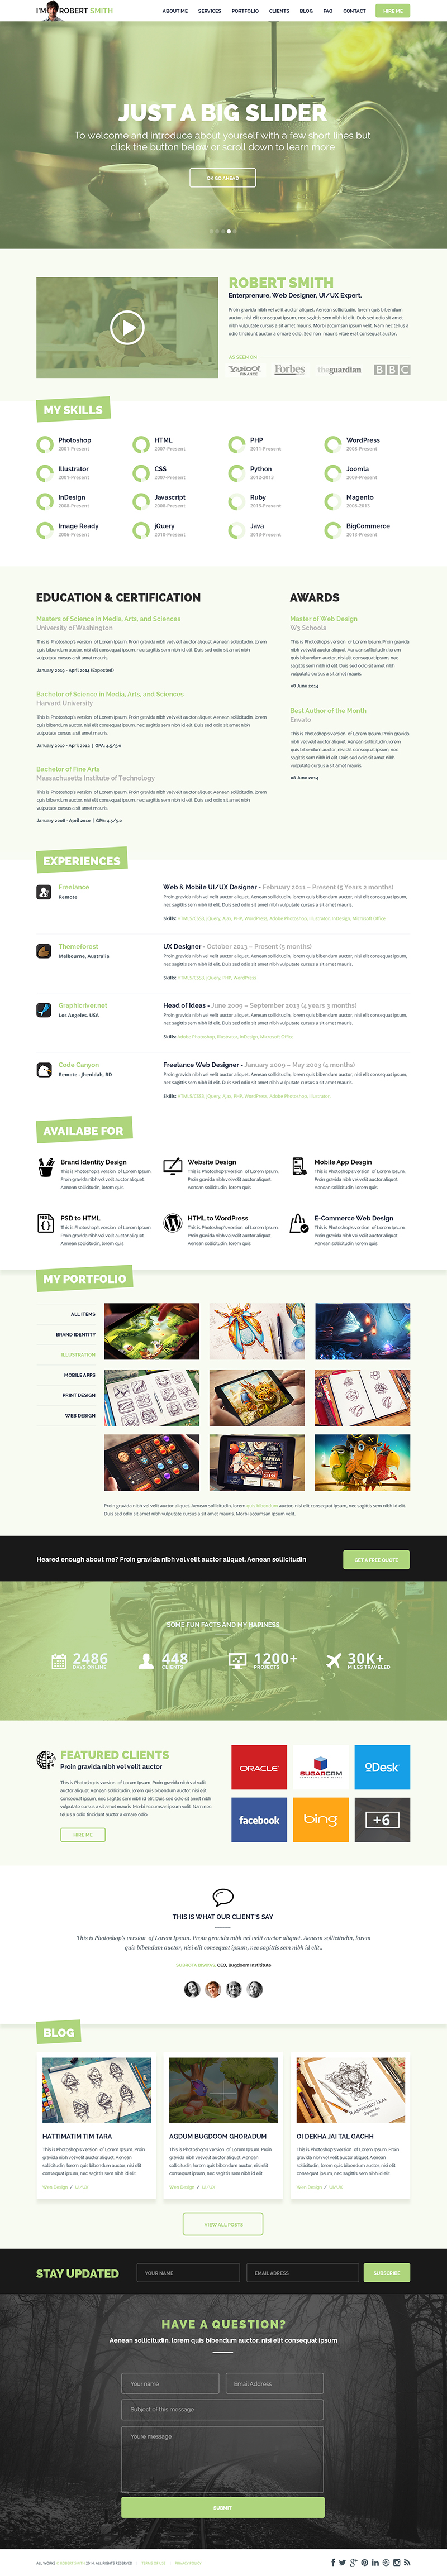 website resume template 5 free extremely professional resume templates collection 25488